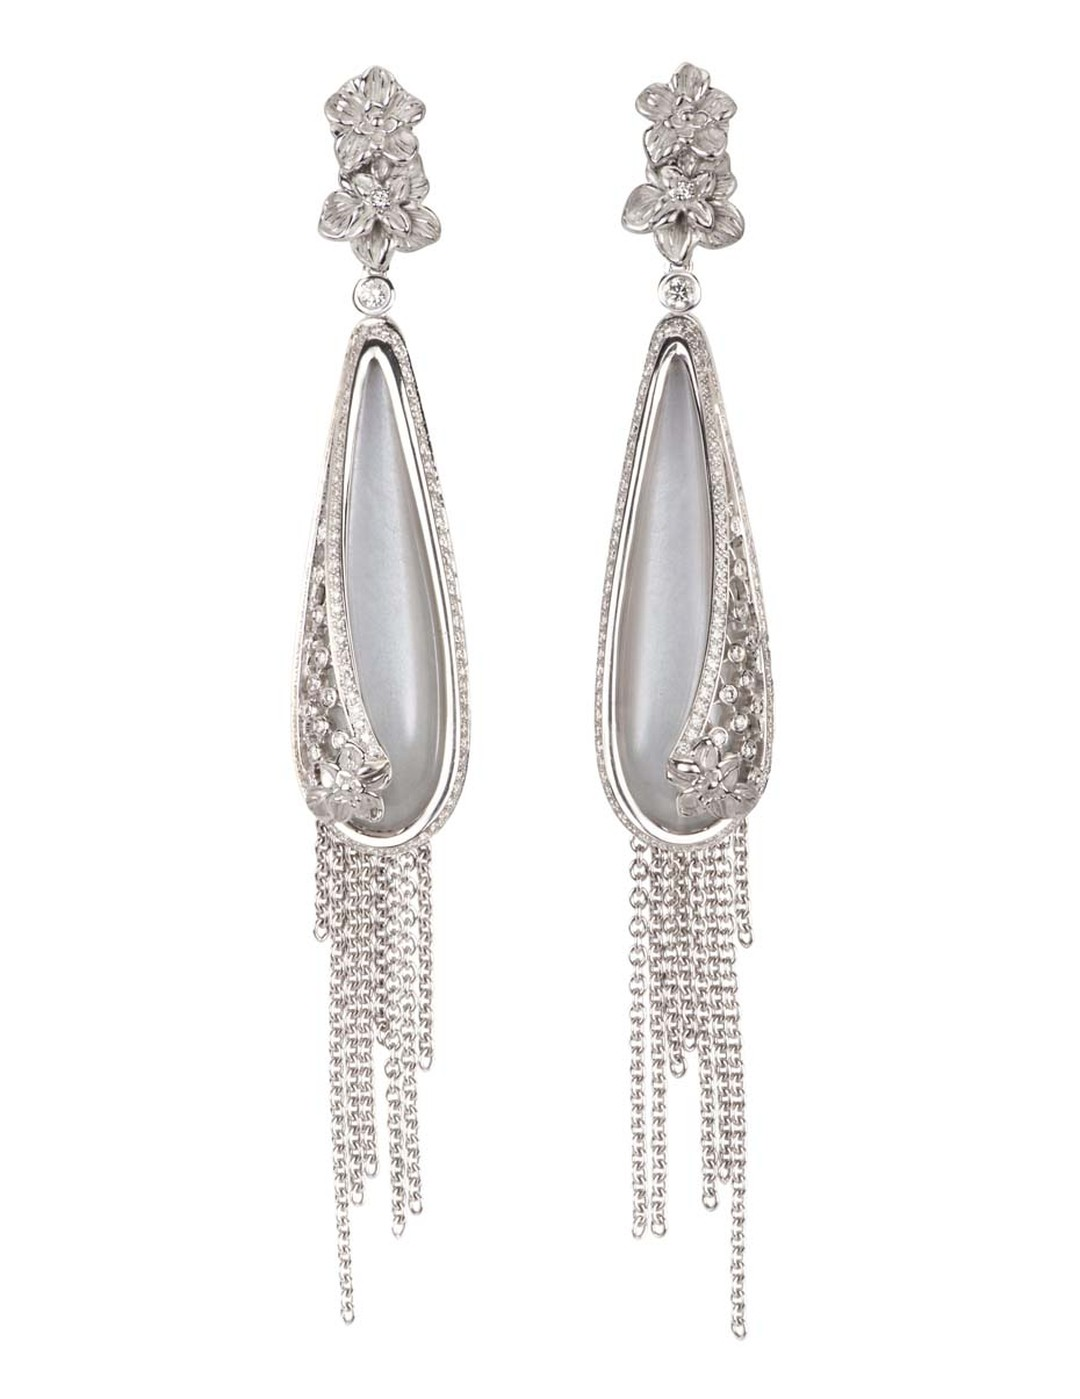 Carrera y Carrera Sierpes medium earrings in white gold, moonstone and diamonds.